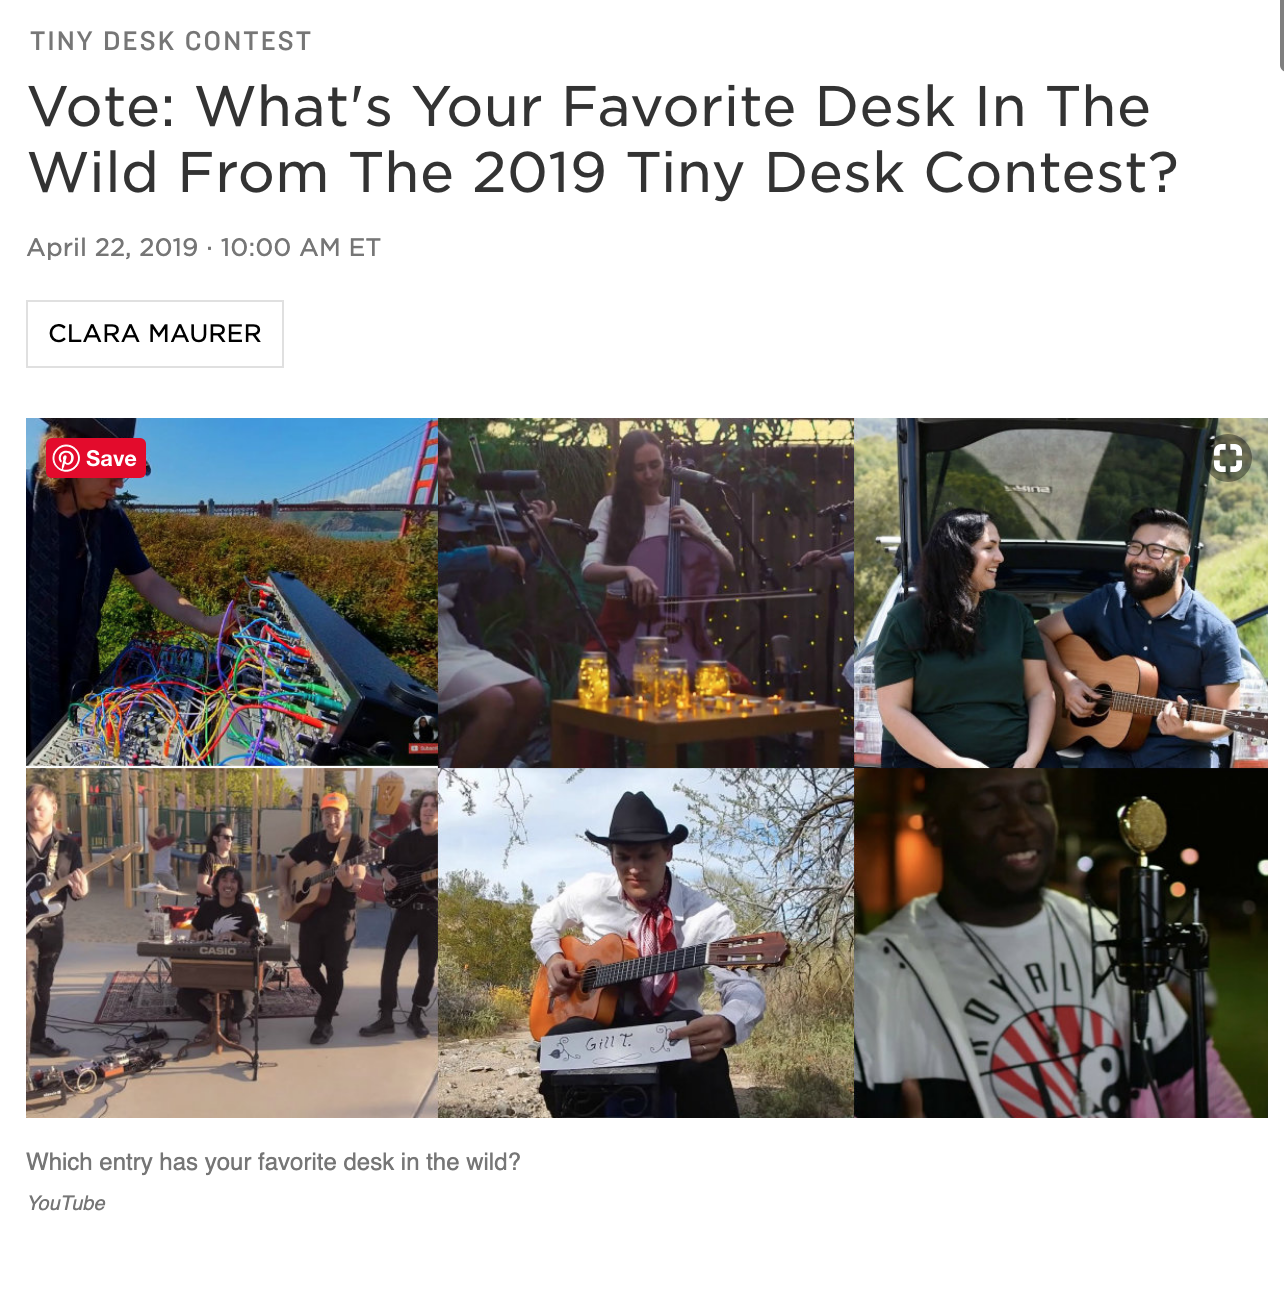 Our Tiny Desk Contest Entry Was Featured on NPR This Week